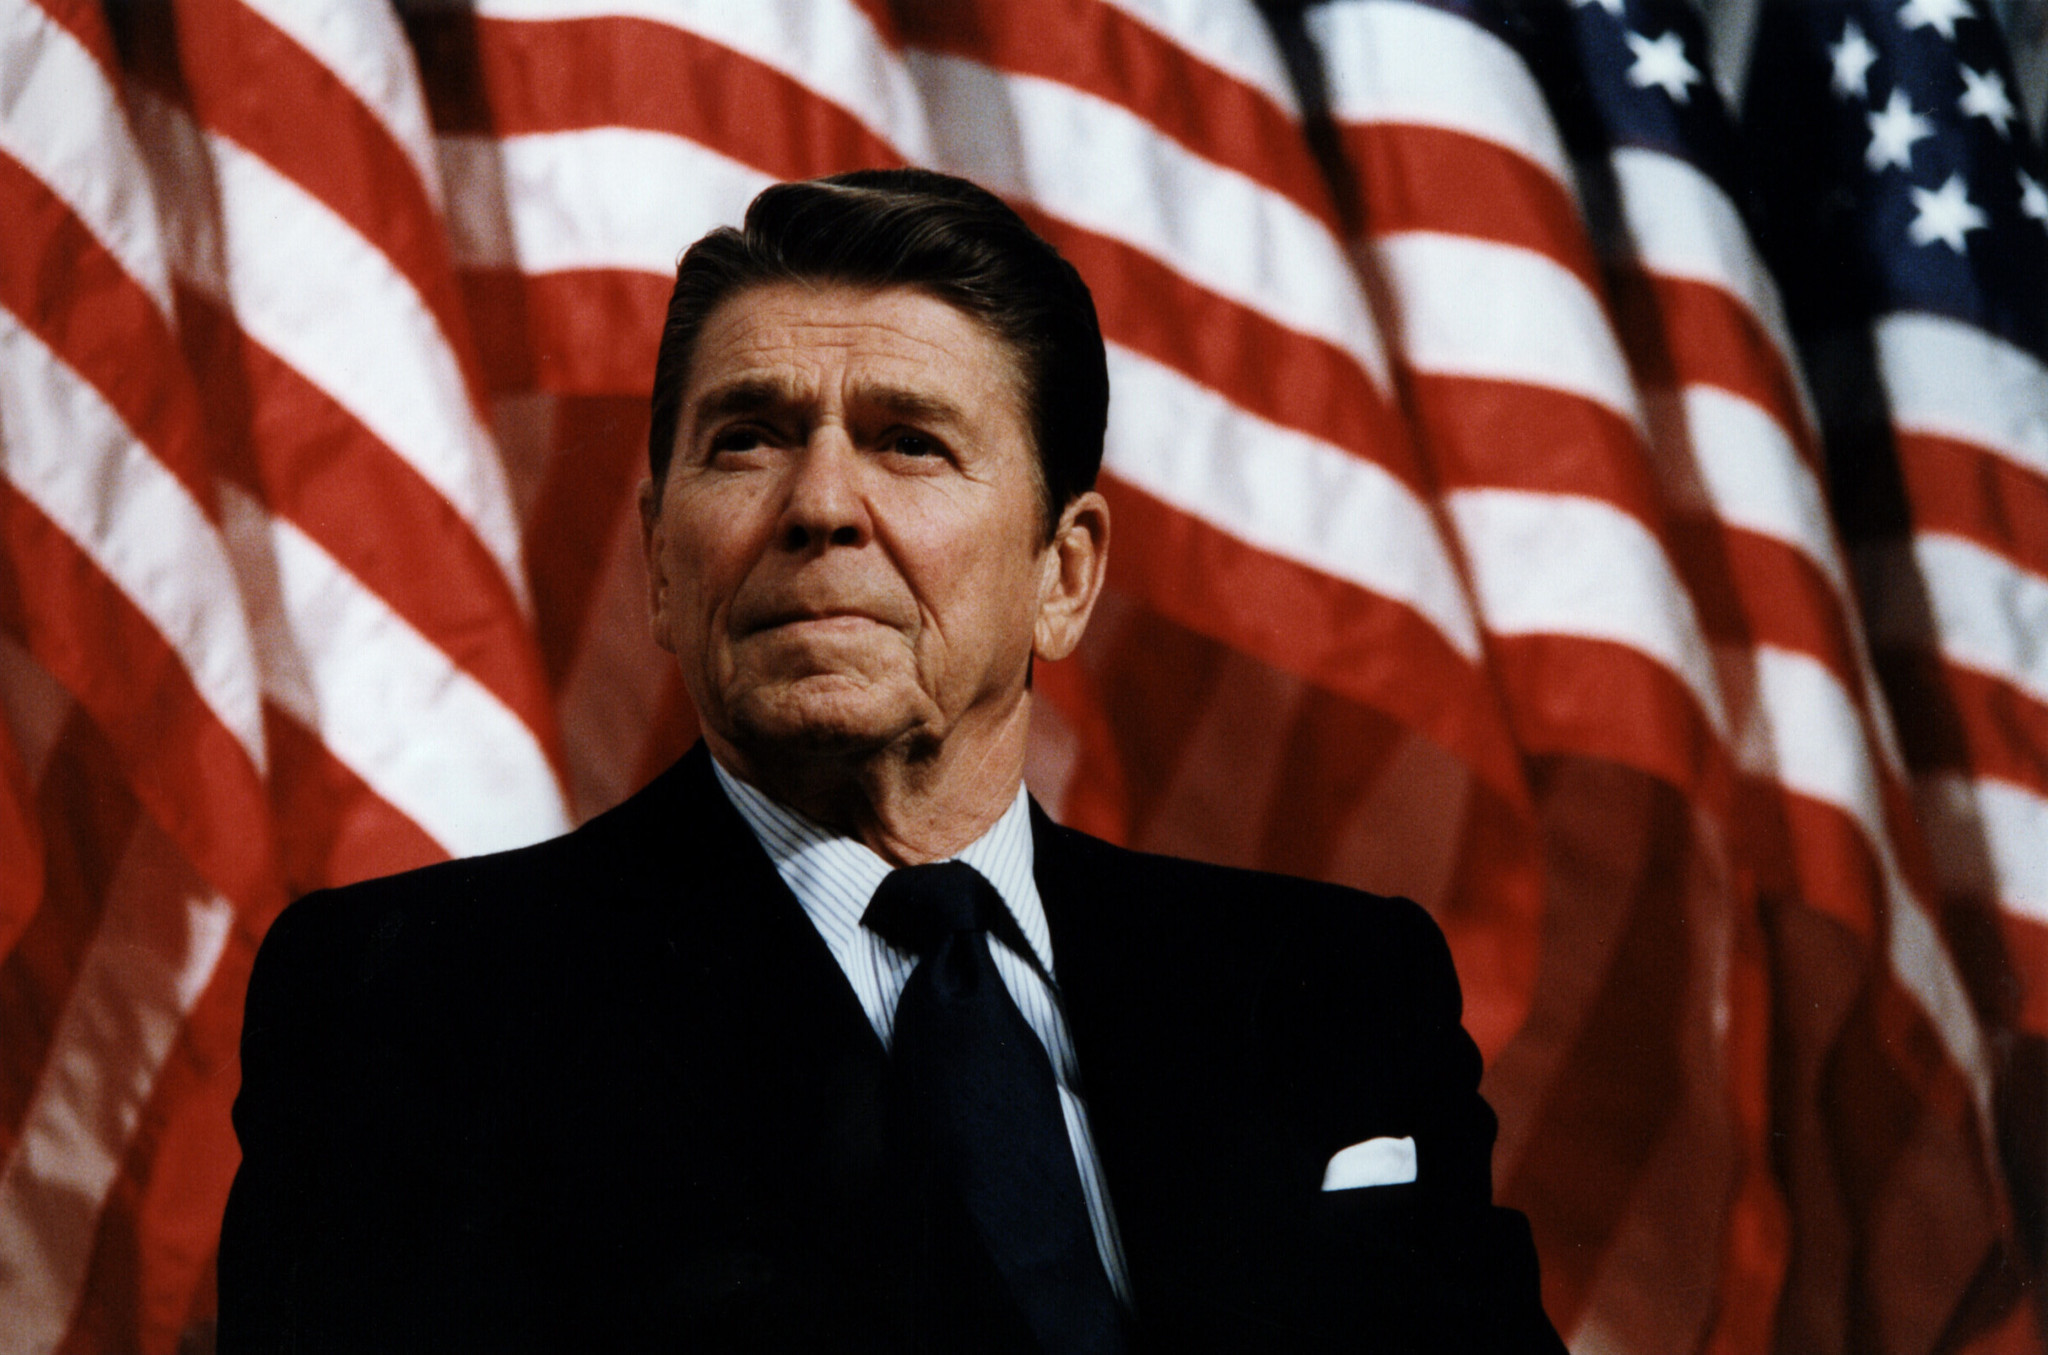 GOP could reopen citizenship paths created by Hoover and Reagan